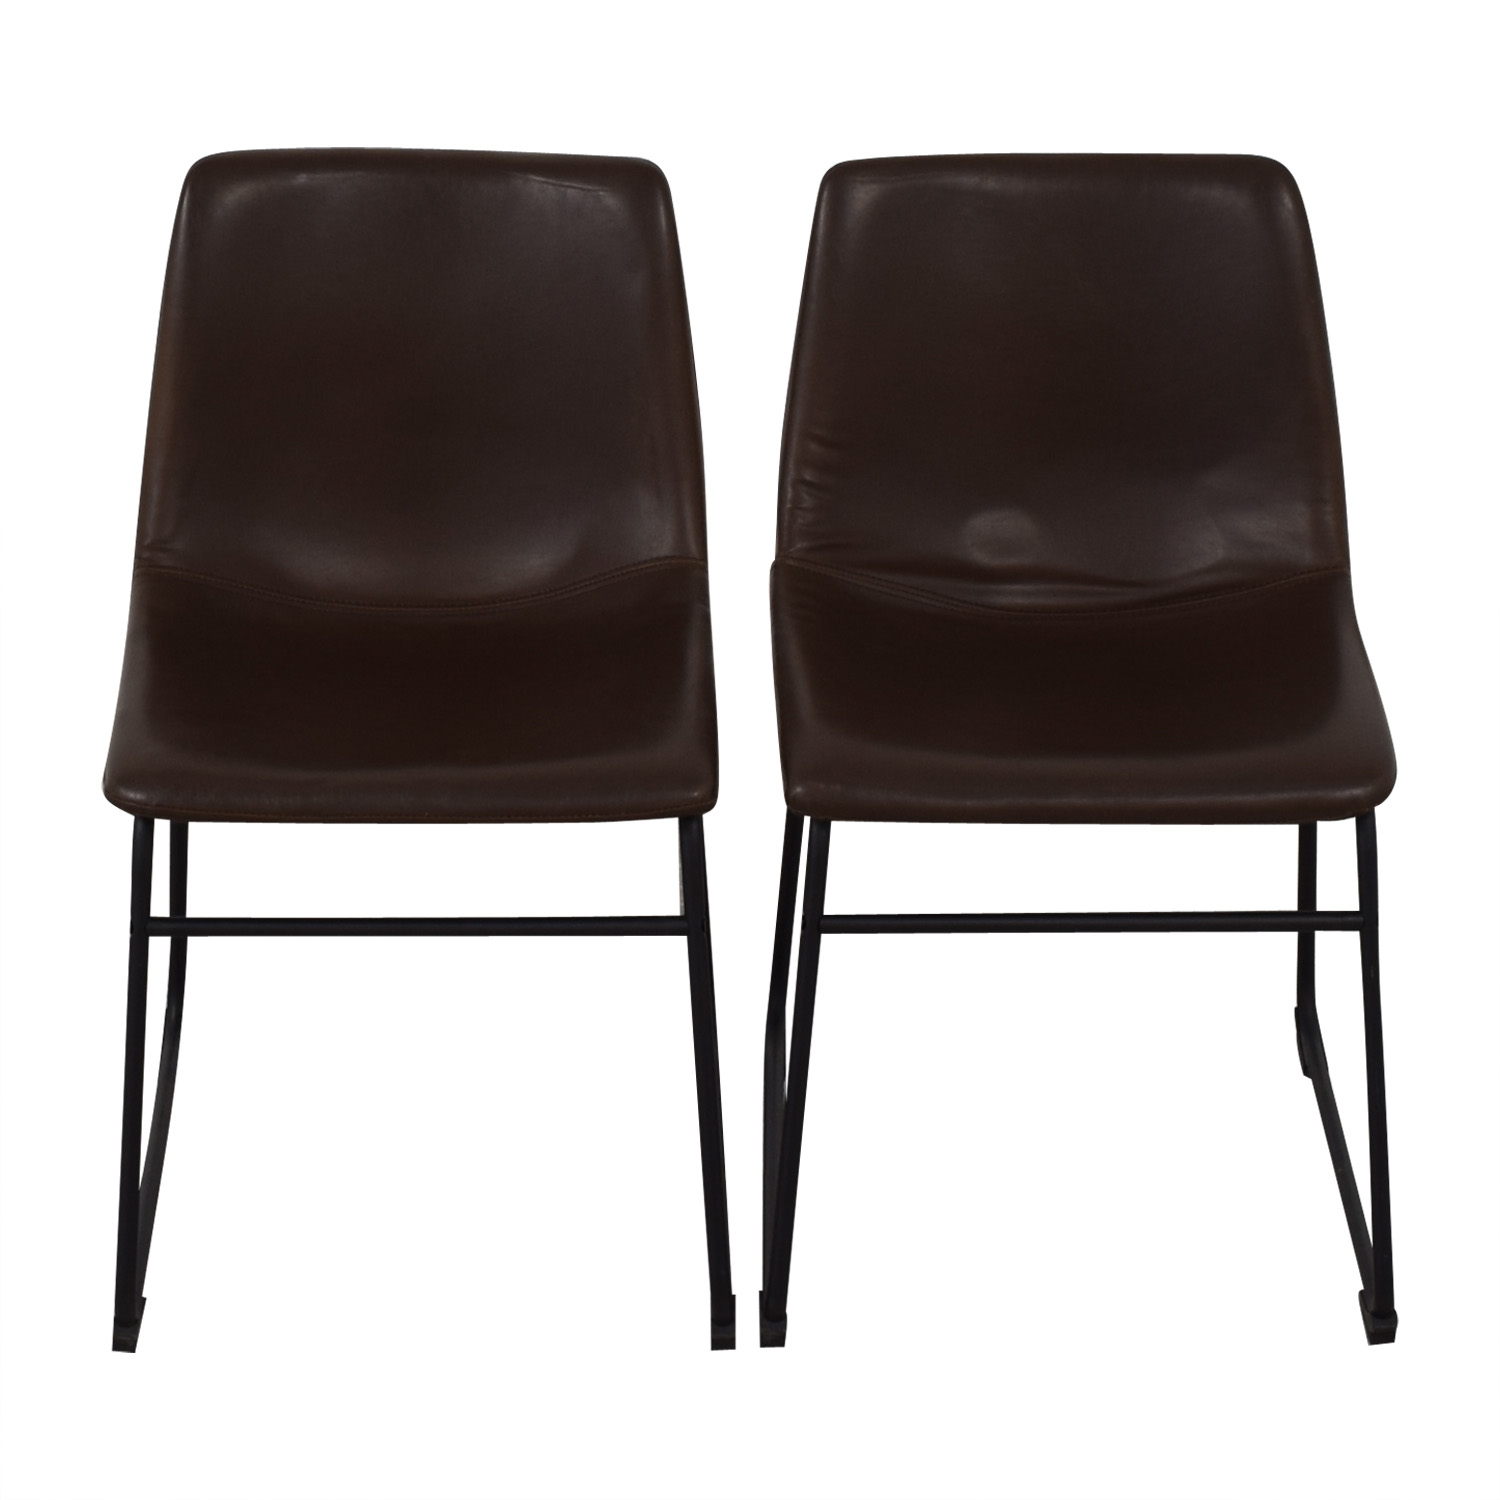 Walker Edison Walker Edison Industrial Faux Leather Dining Chairs brown